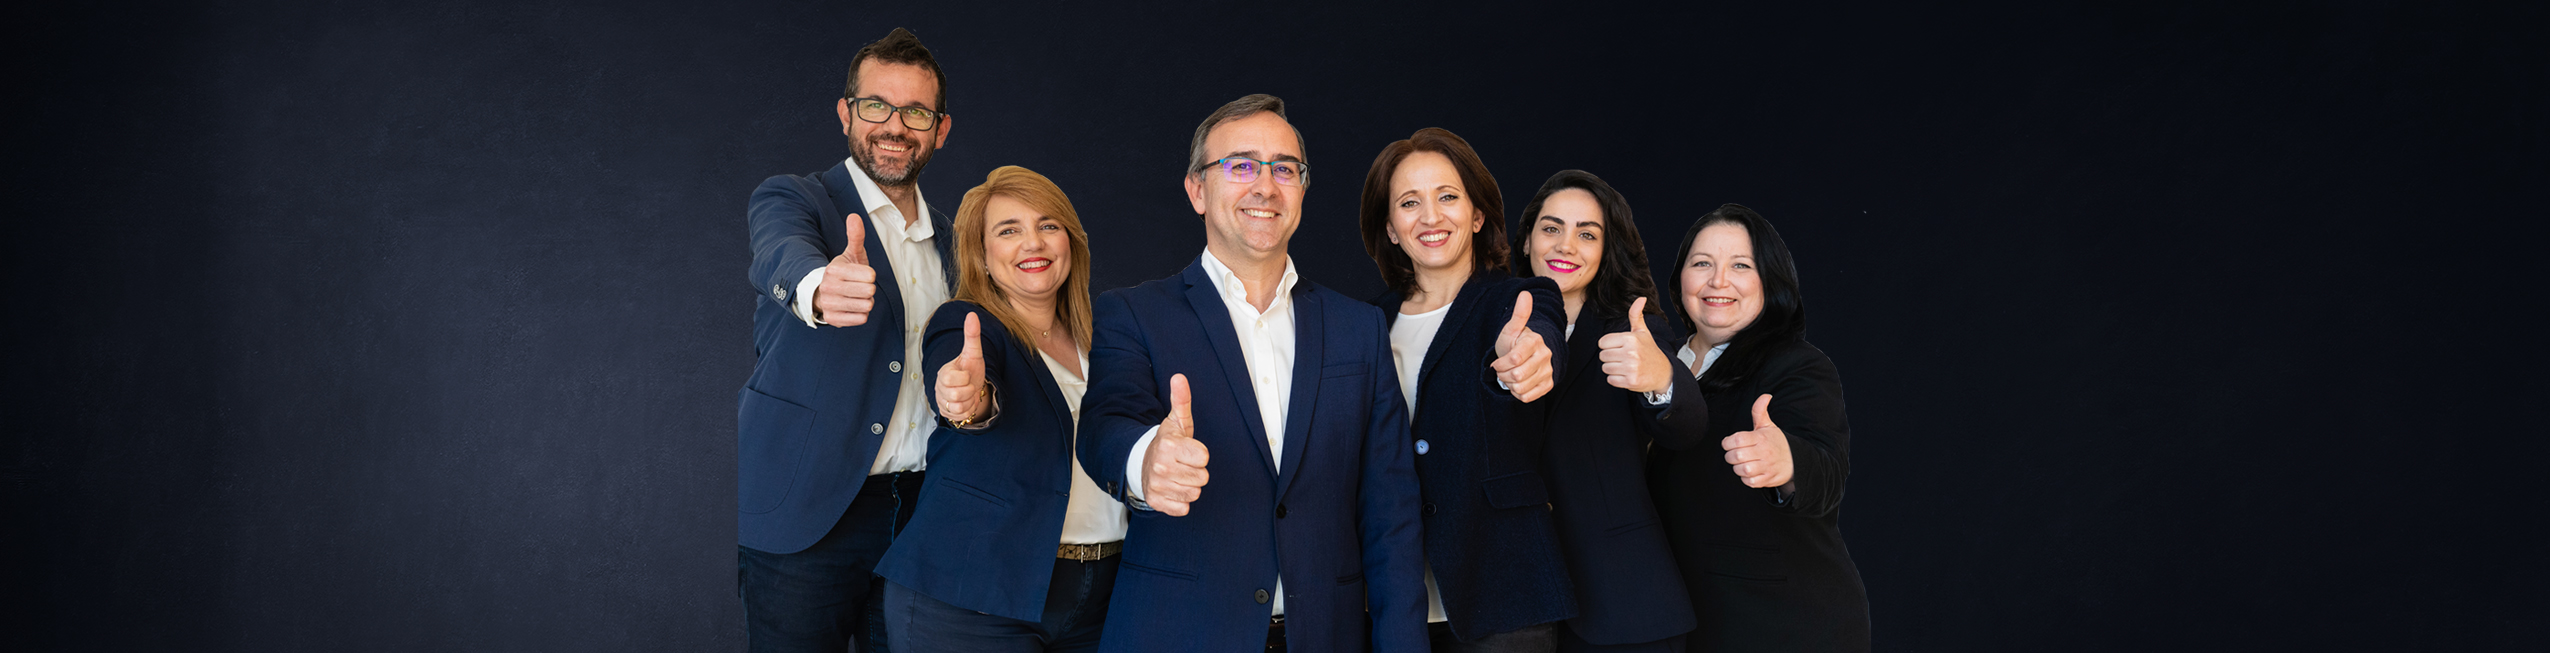 Equipo de Marketing Acción